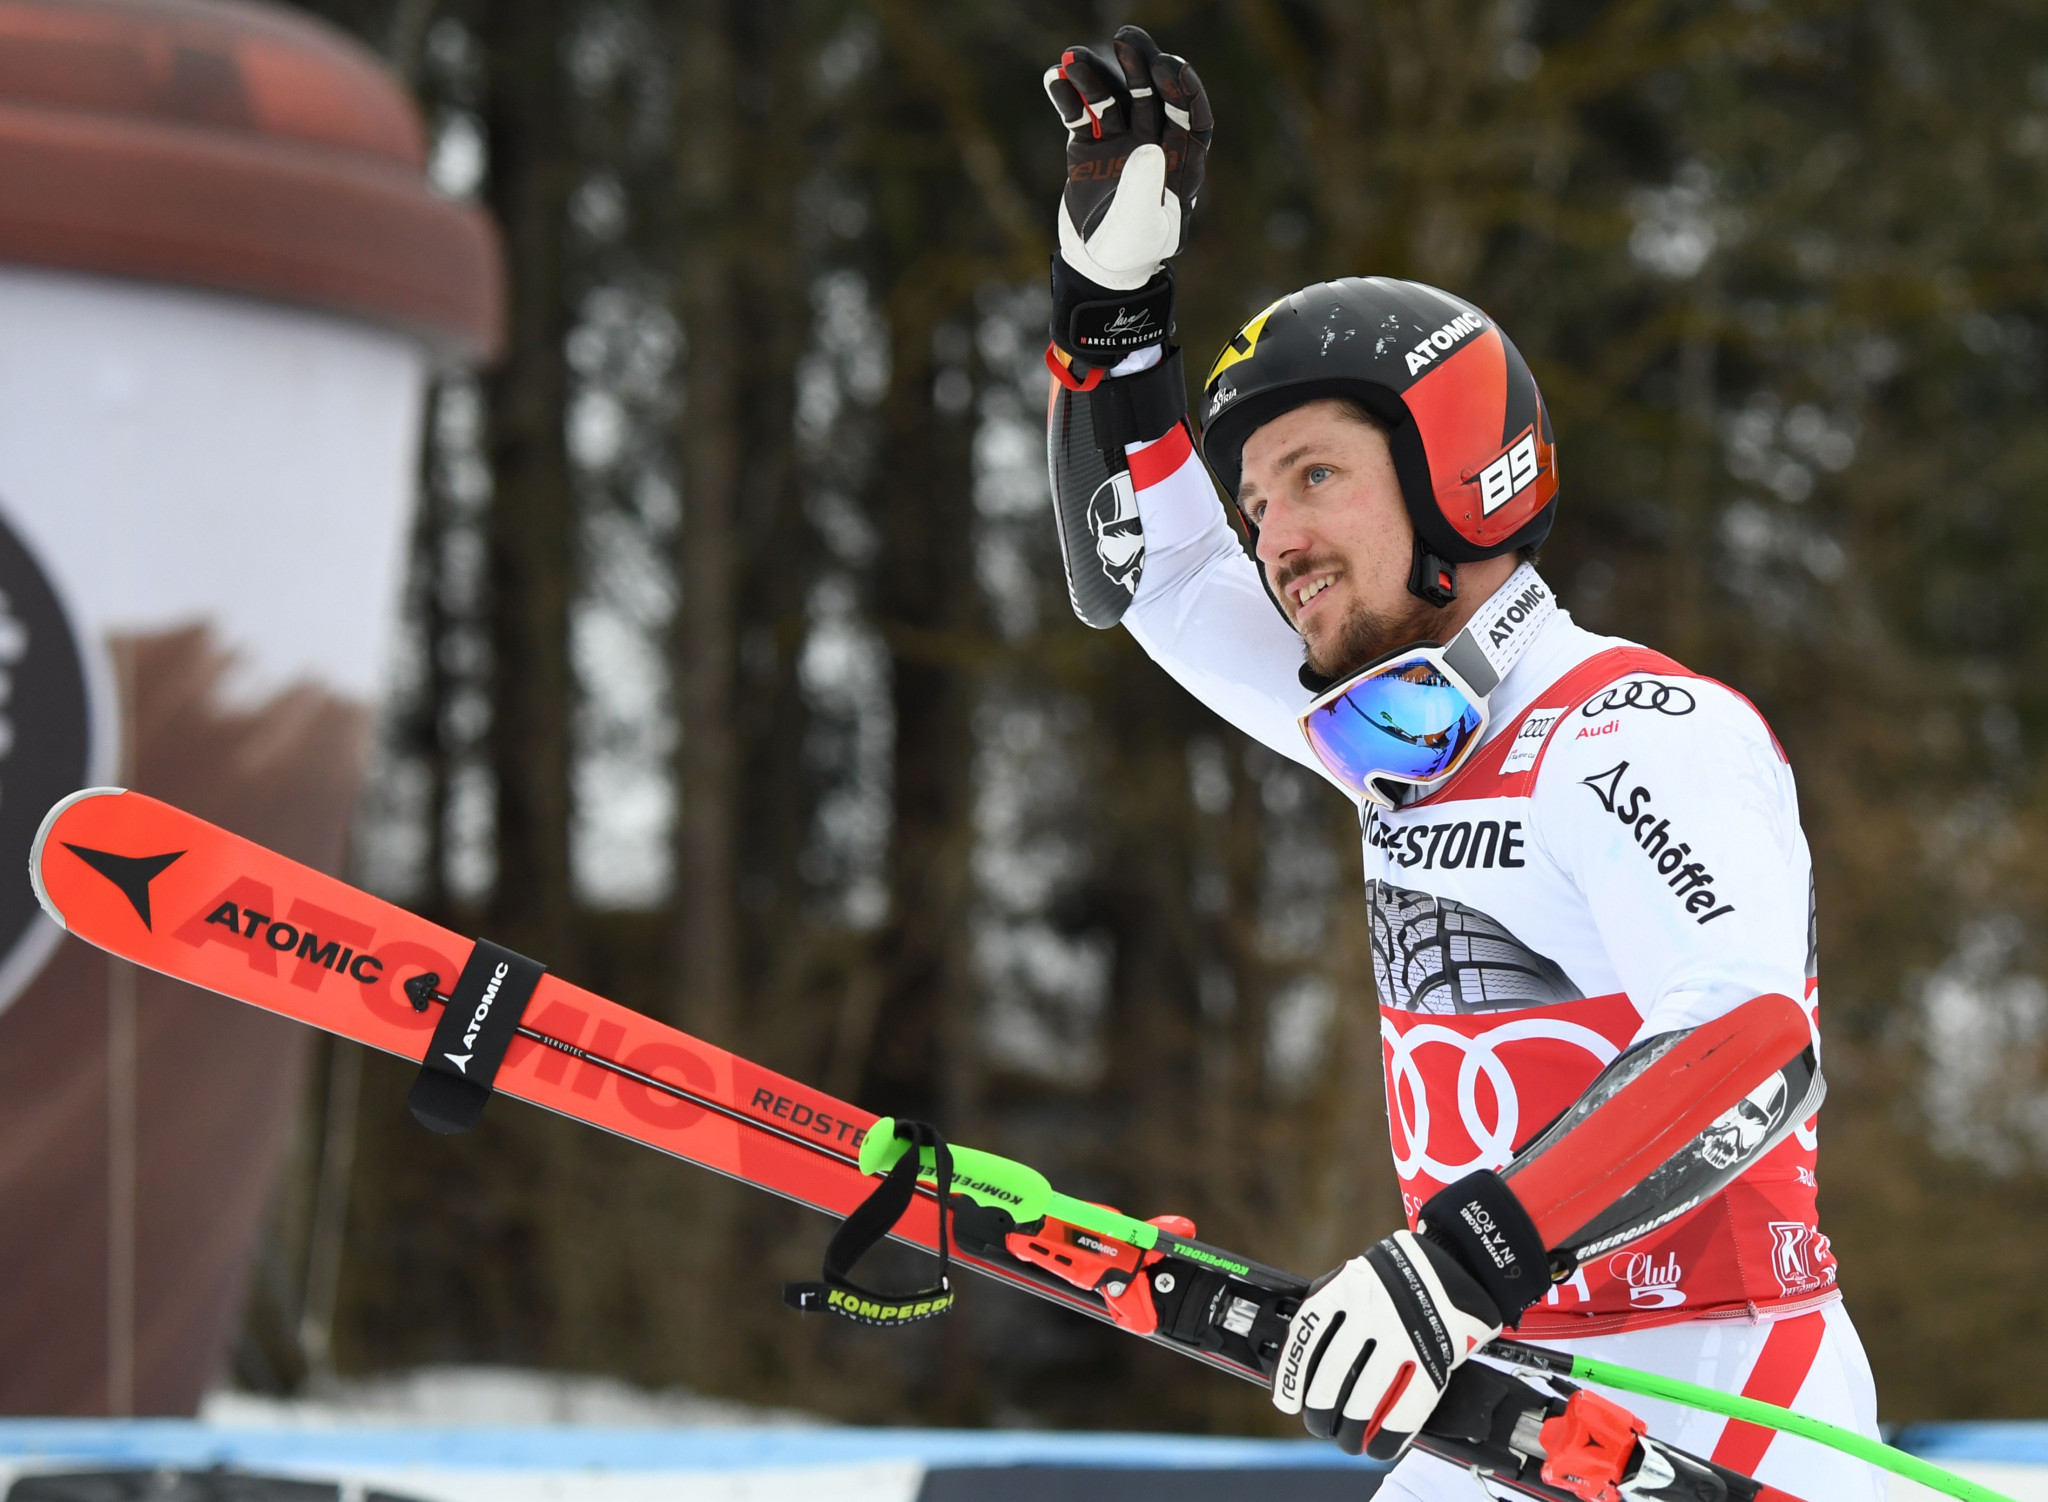 FIS Alpine World Cup season to continue with Stockholm city event